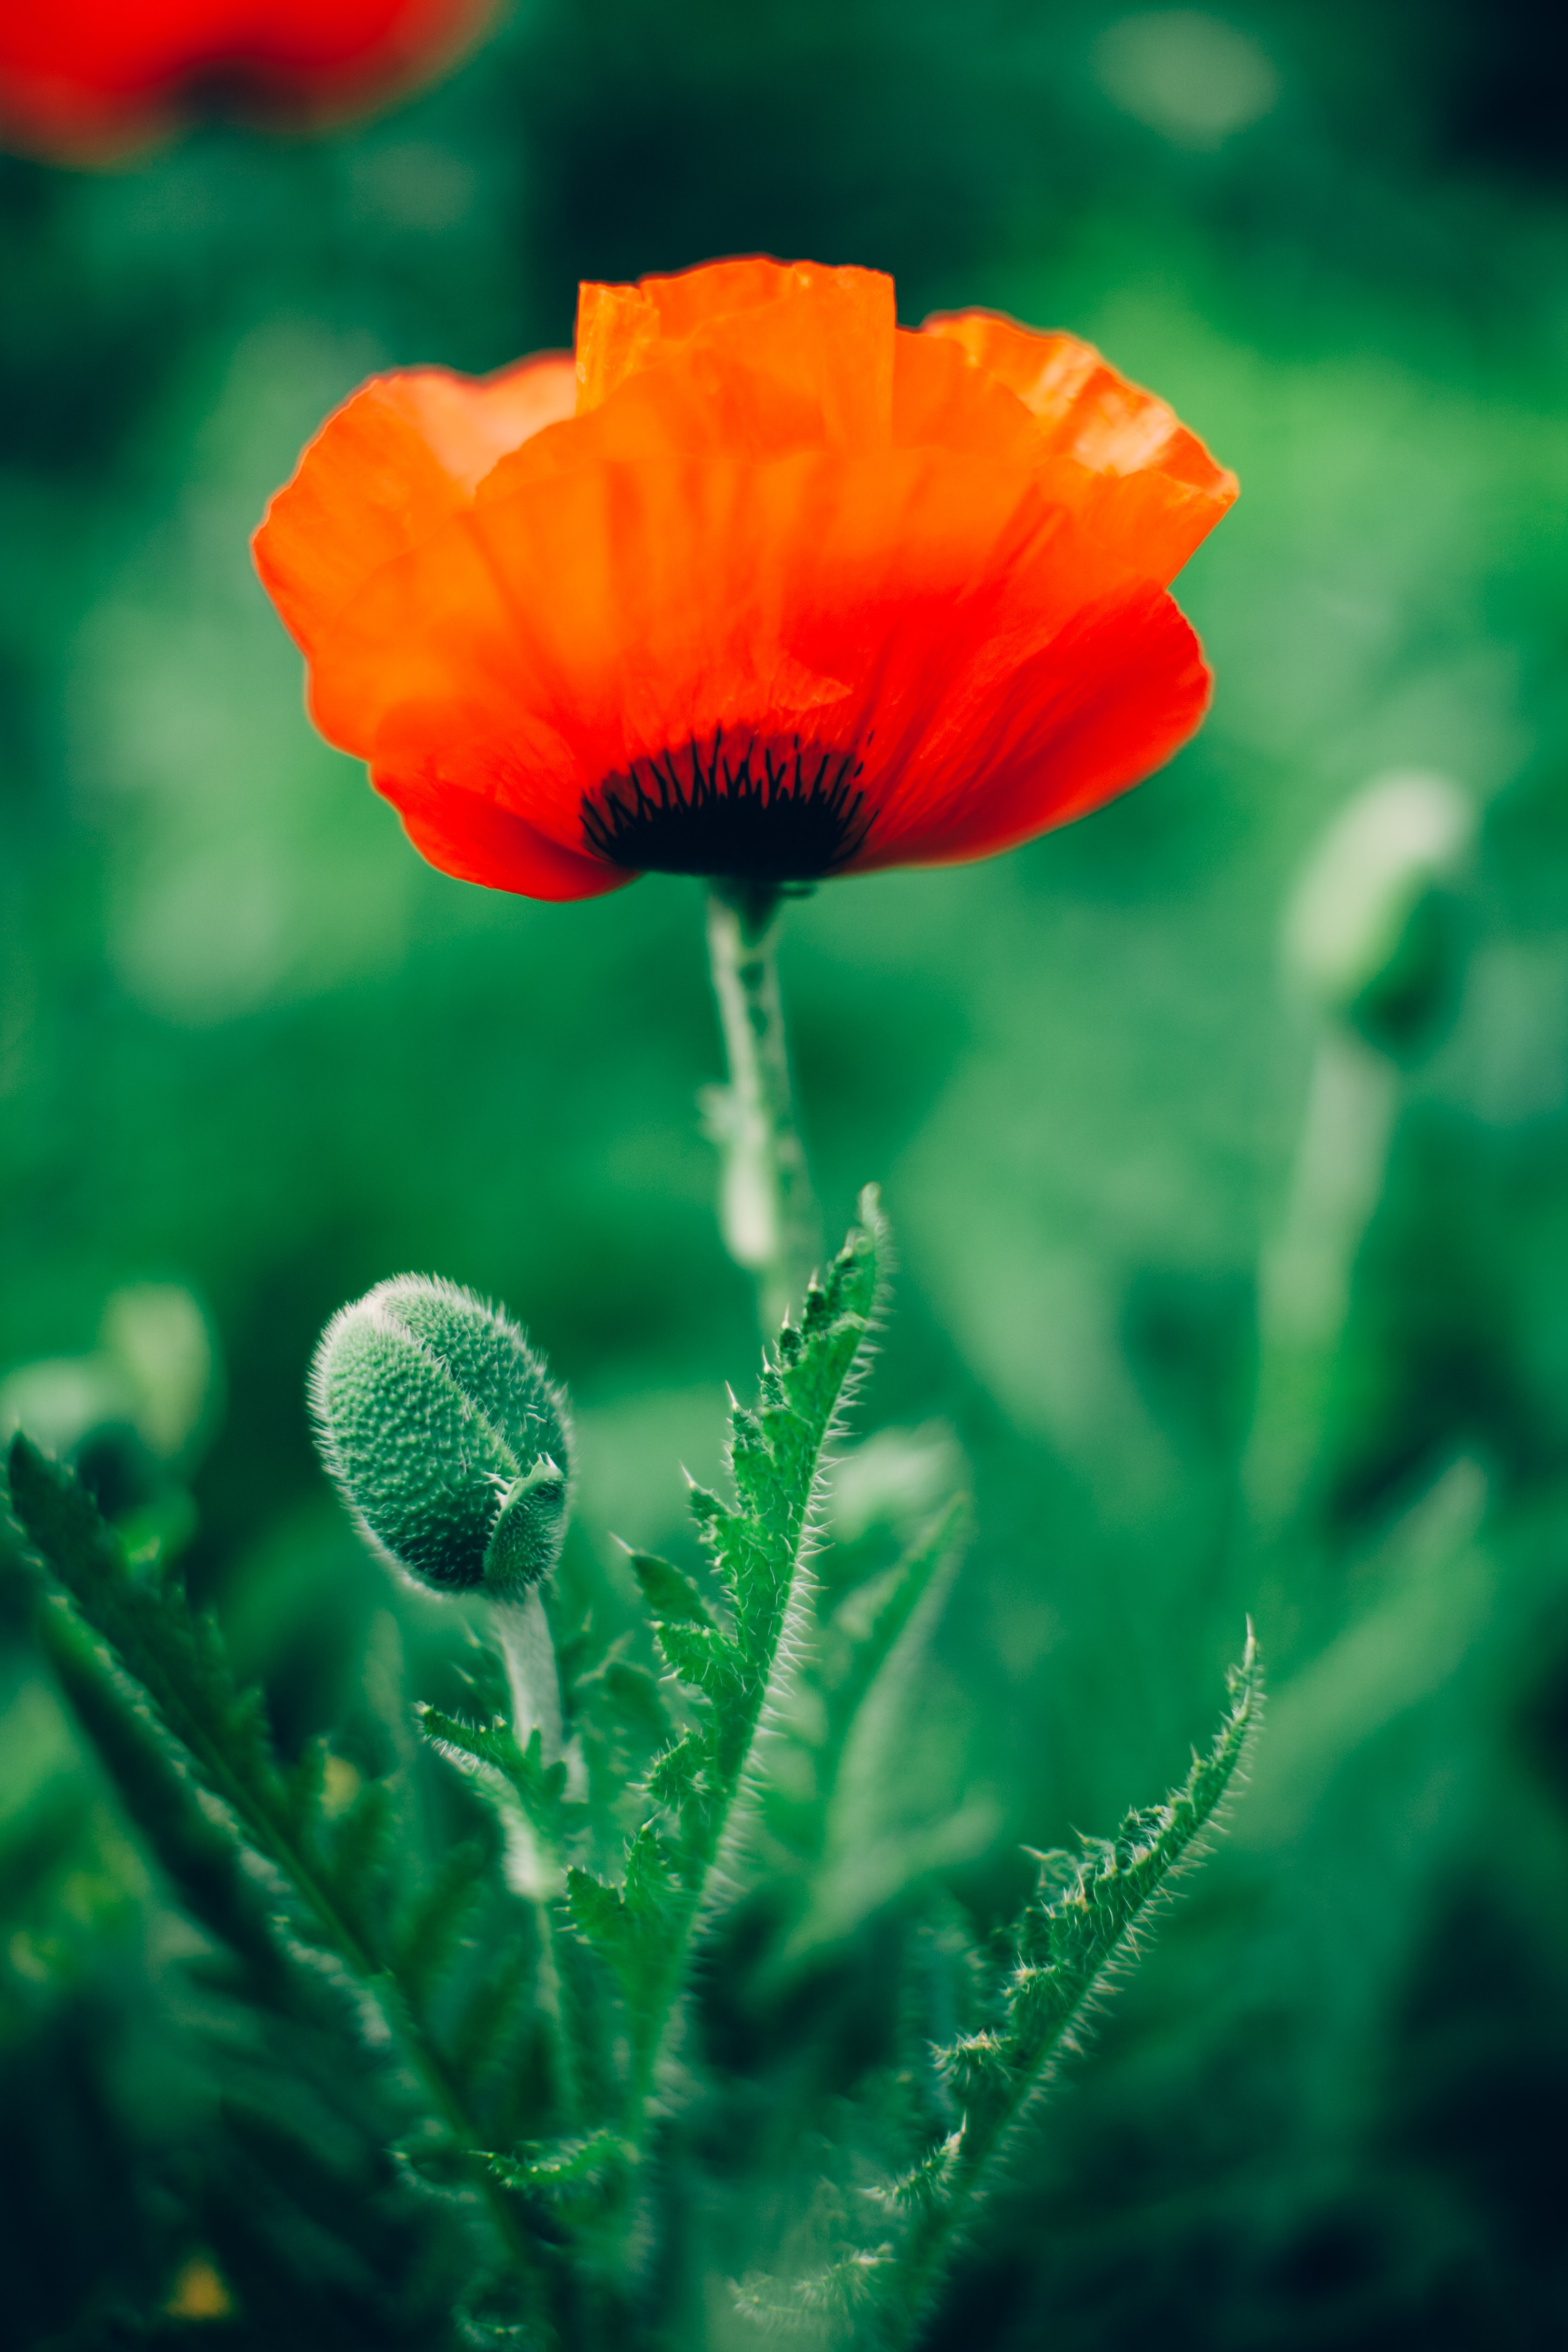 red common poppy flower selective focus phography